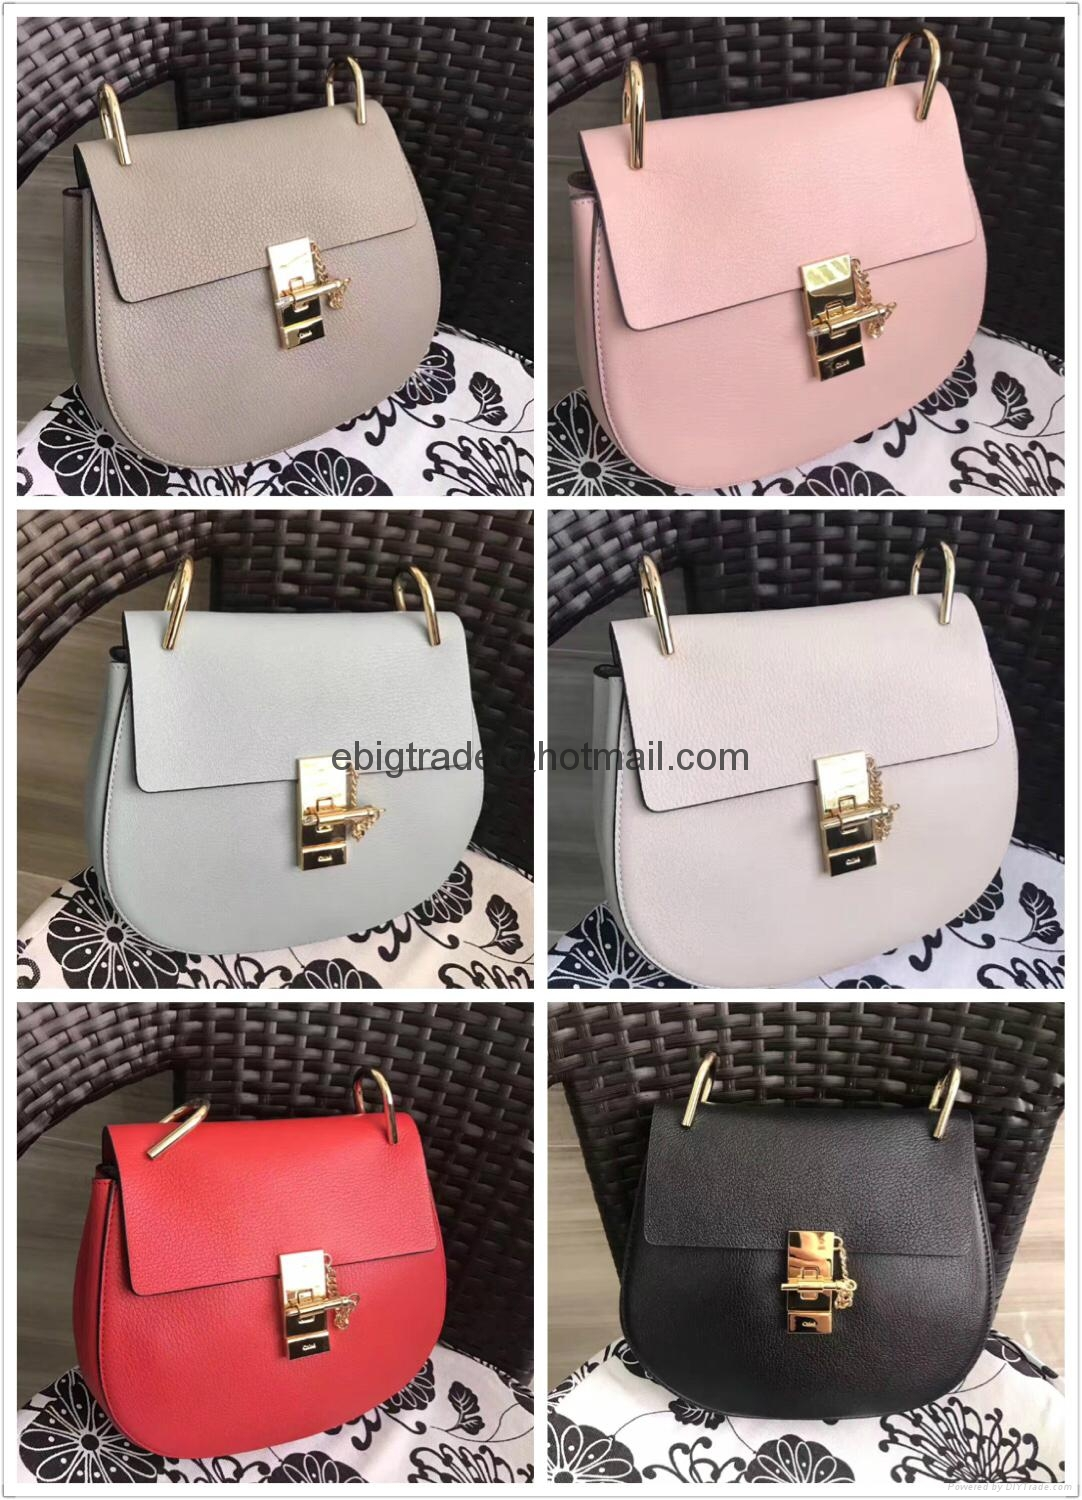 cheap Chloe bags